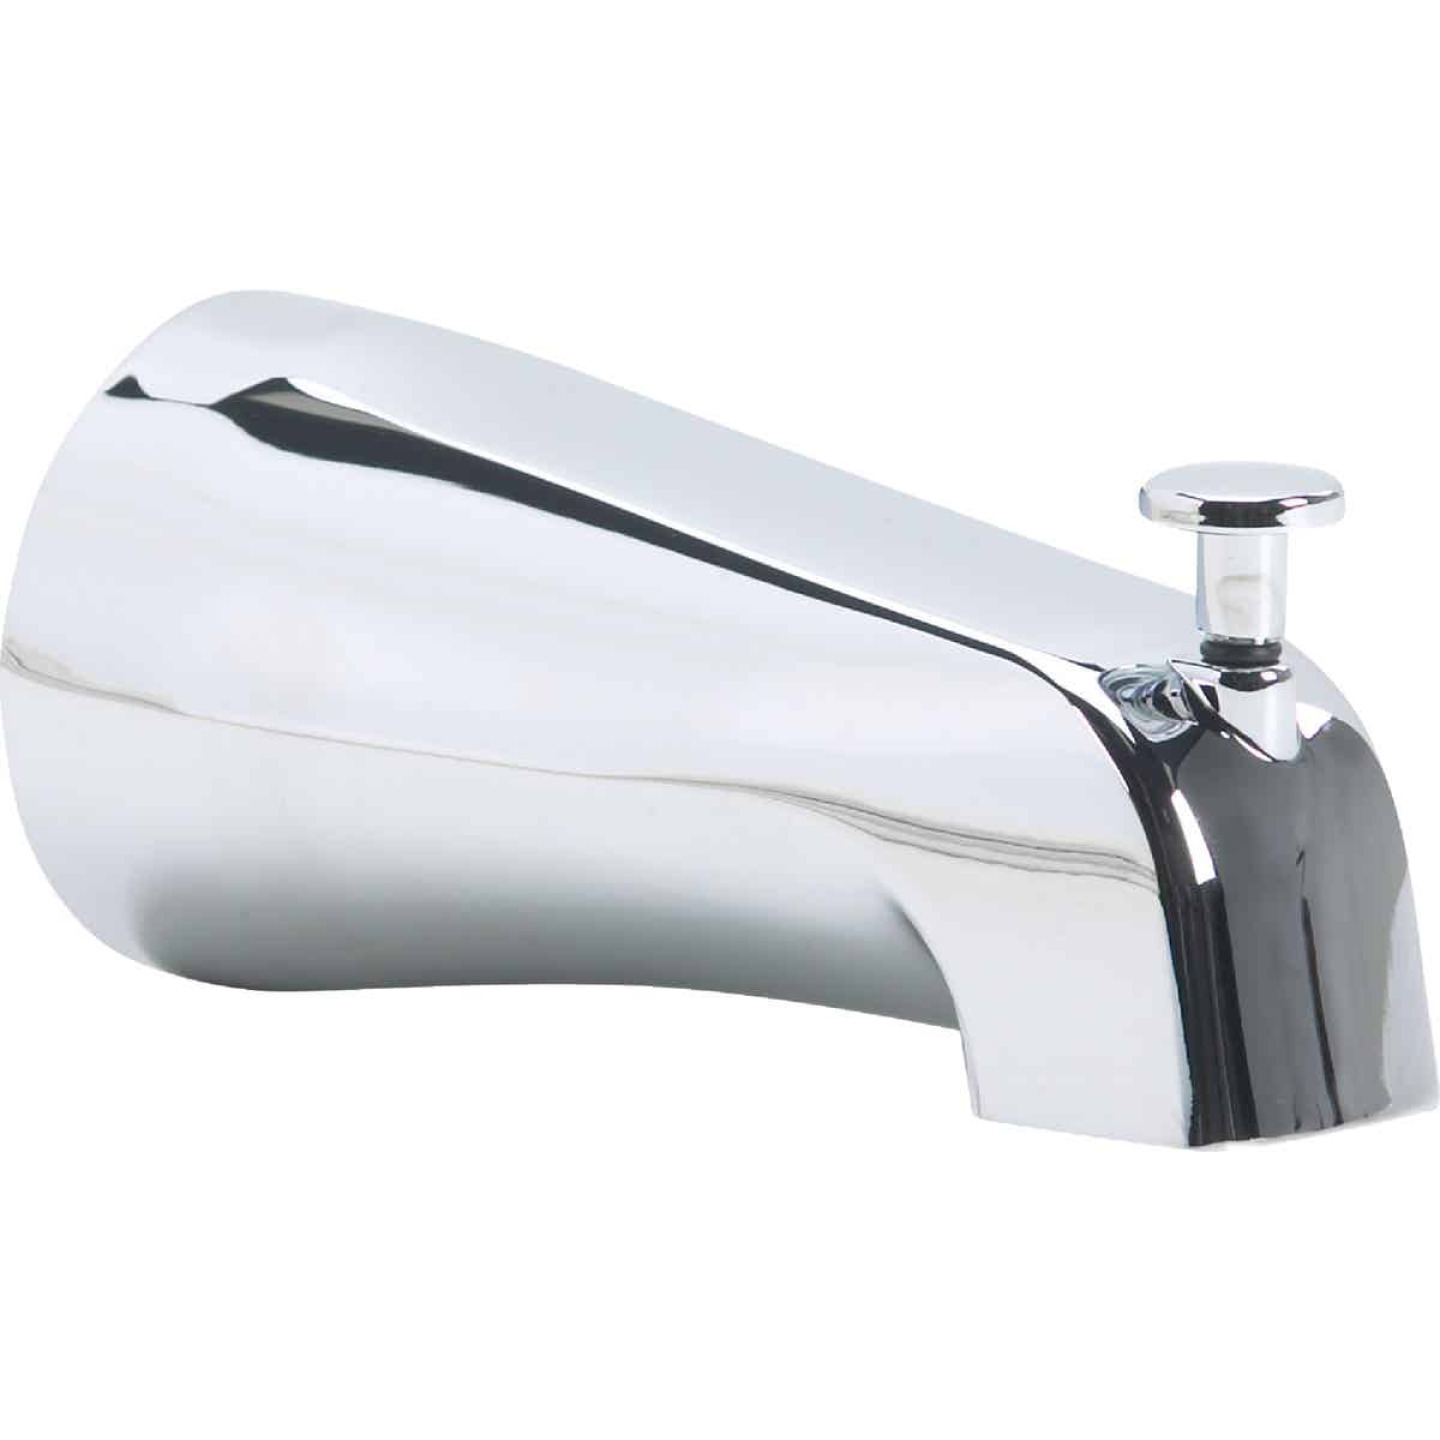 Kohler Genuine Parts 1/2 In. Chrome Bathtub Spout with Diverter Image 1